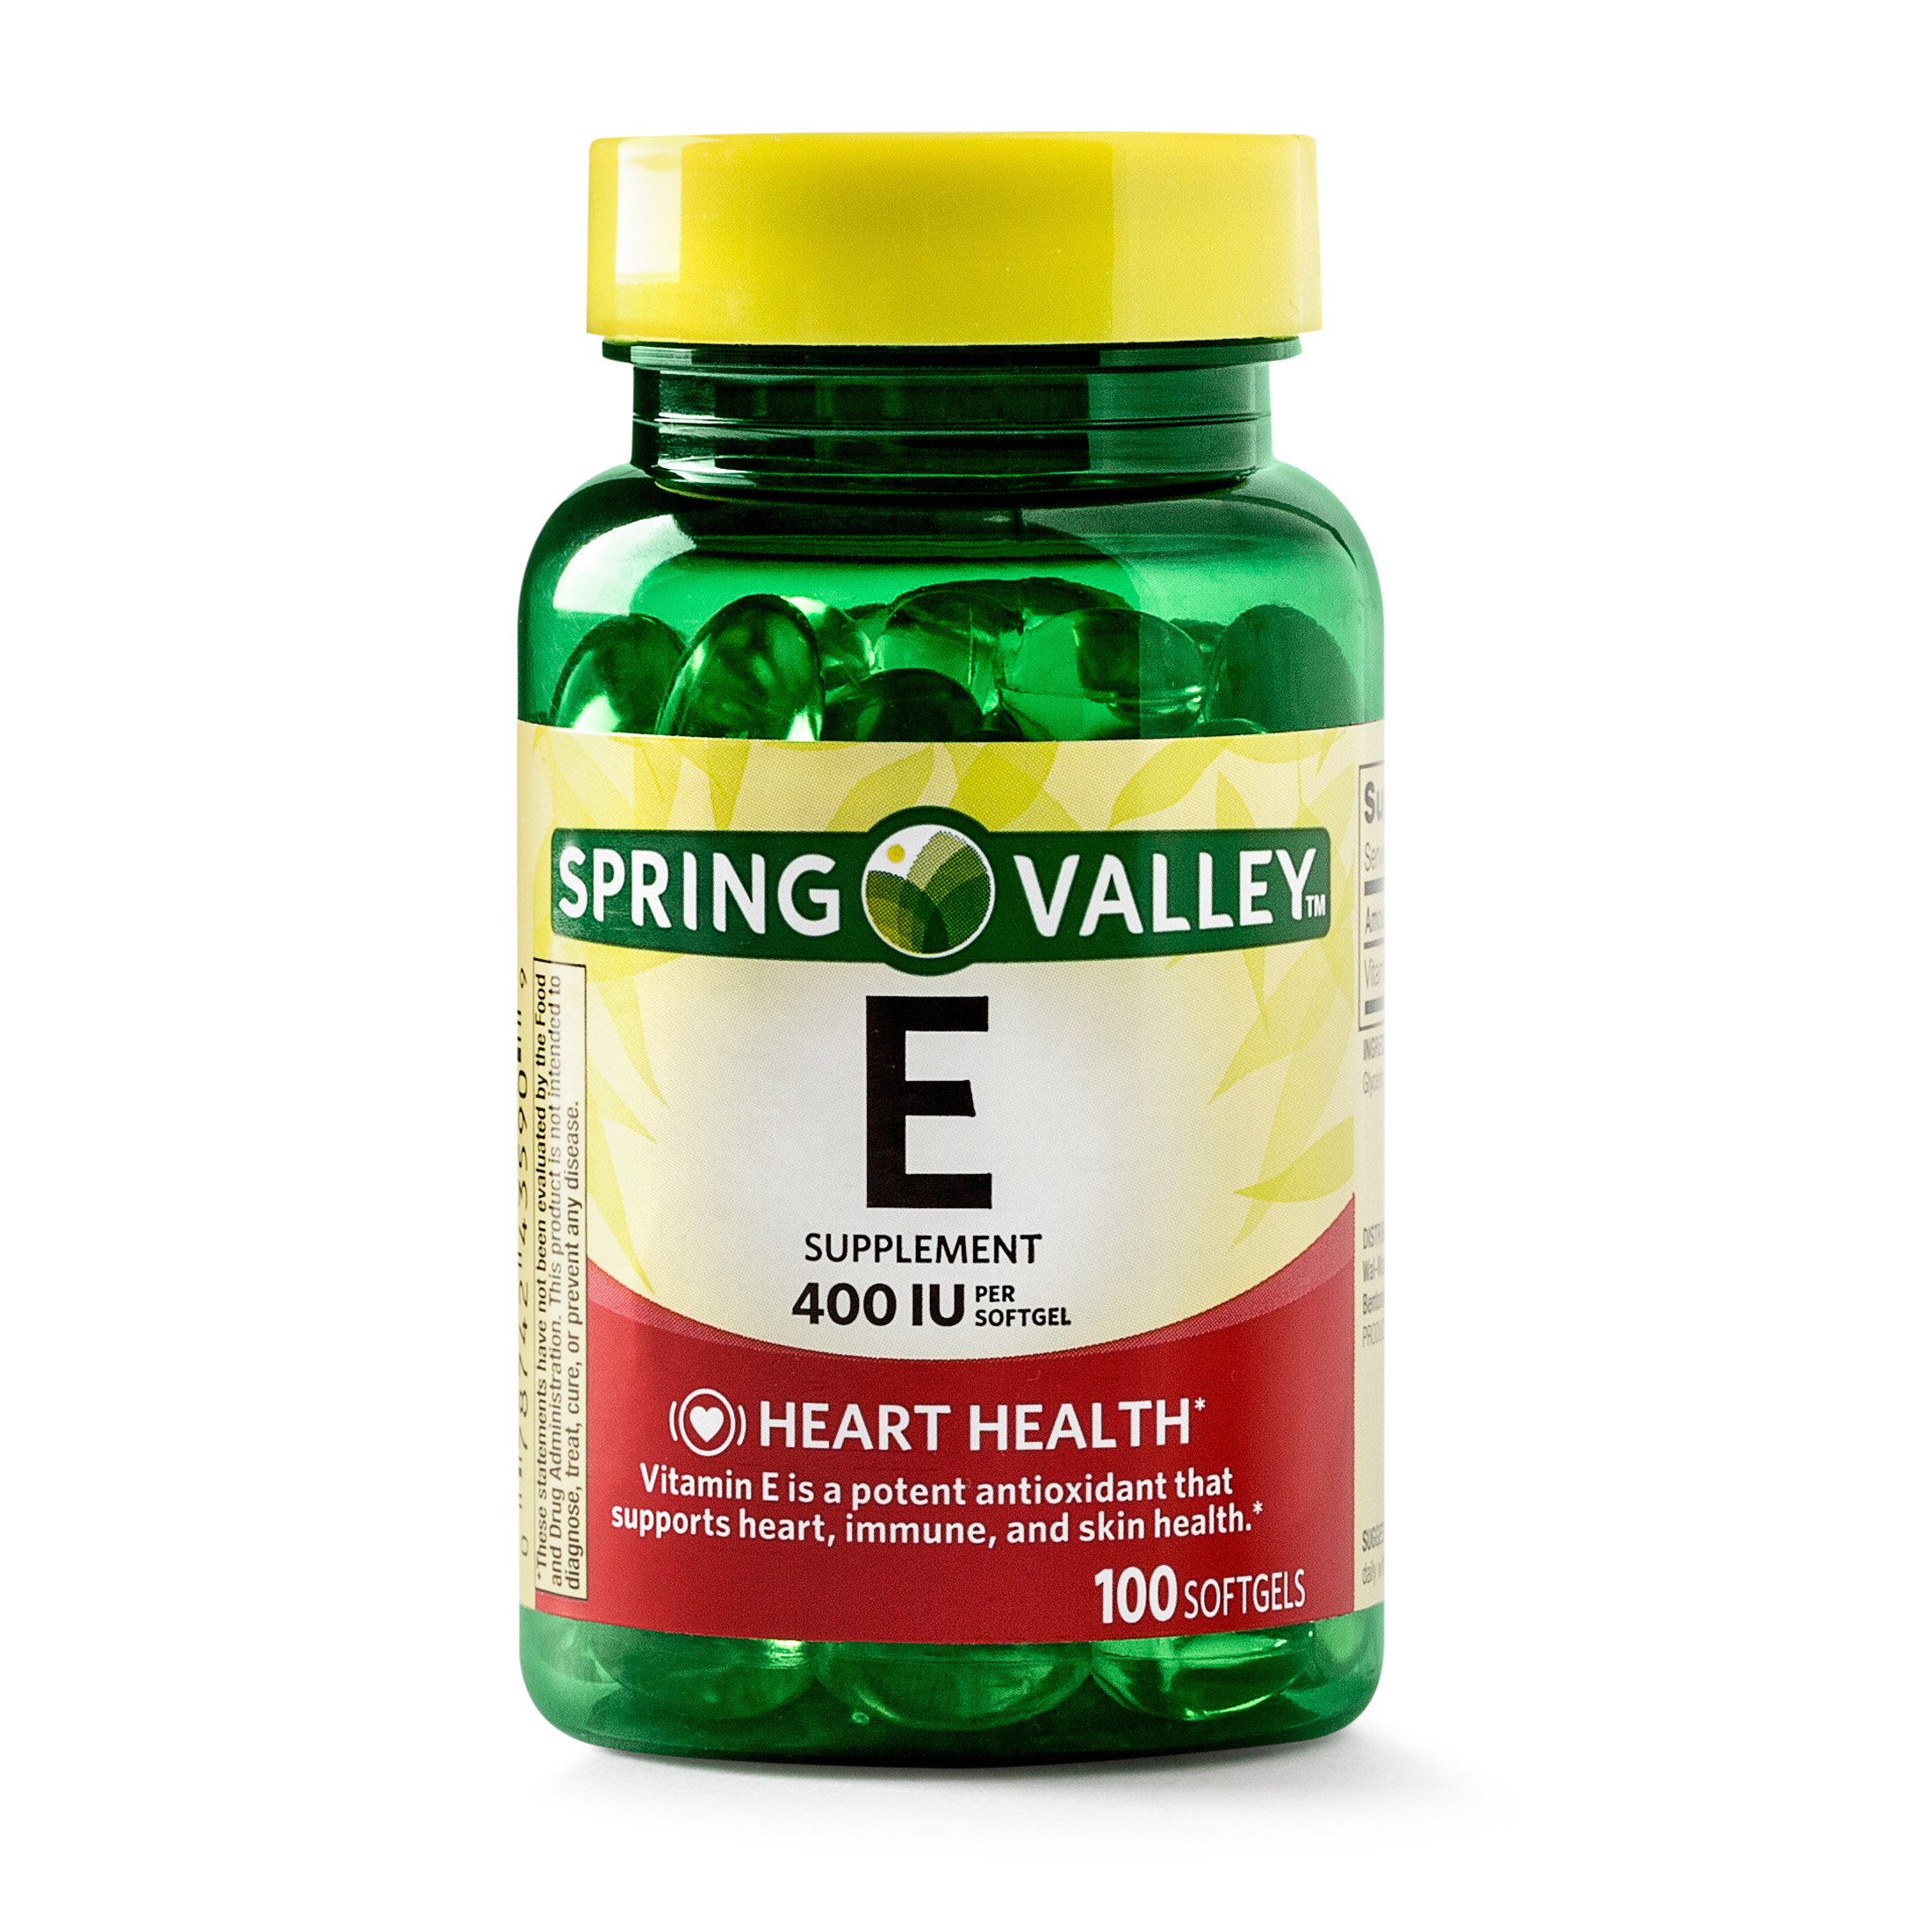 Spring Valley Vitamin E Supplement, 400IU, 100 Softgel Capsules